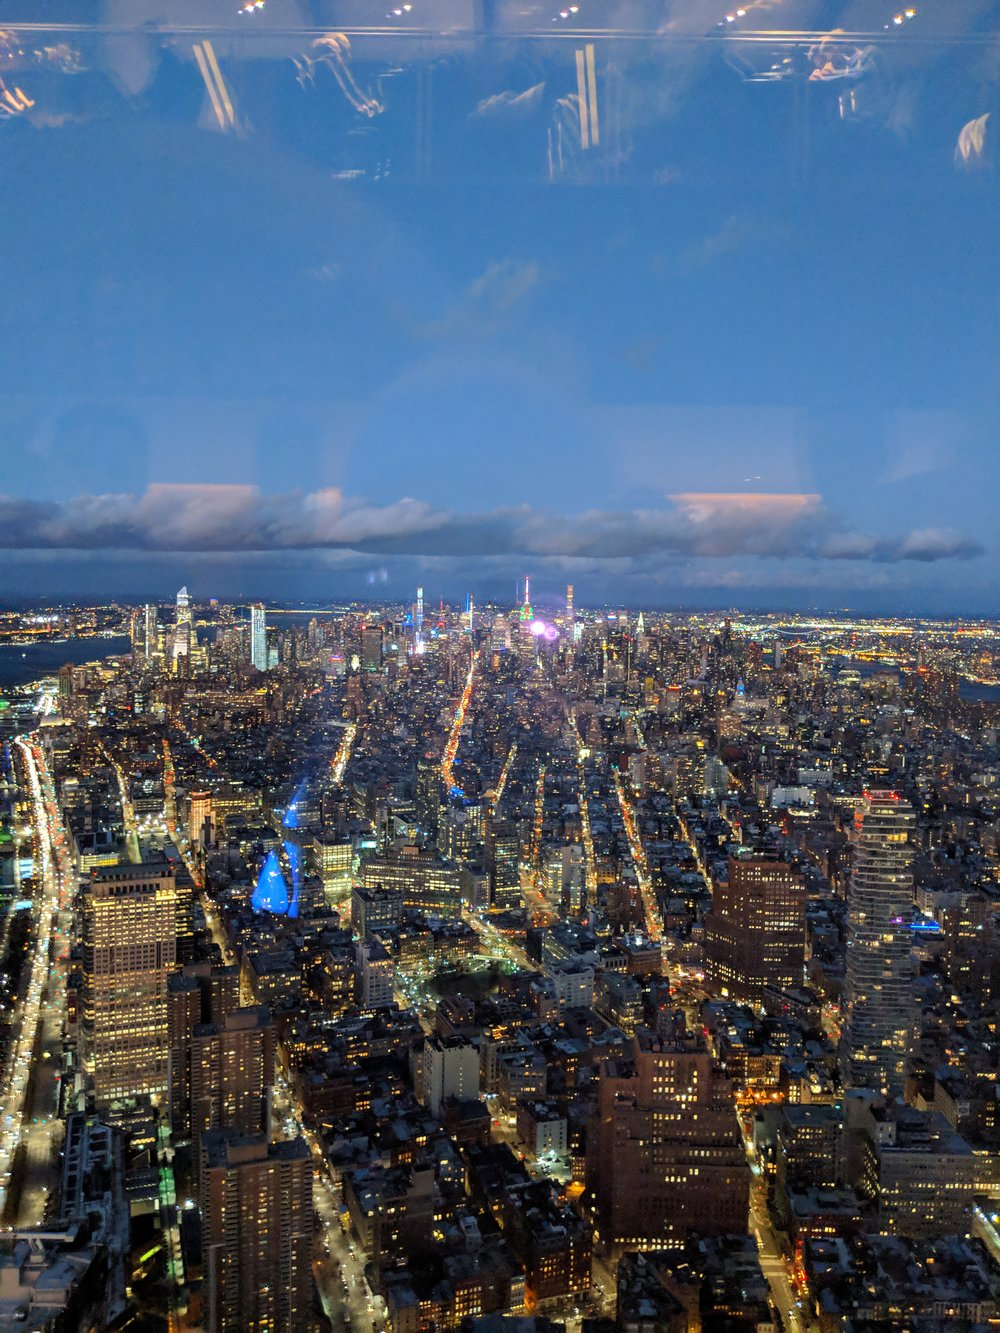 One World Observatory view after sunset. Such a cool experience - definitely exceeded my expectation. The reveal once you get to the top is INCREDIBLE!